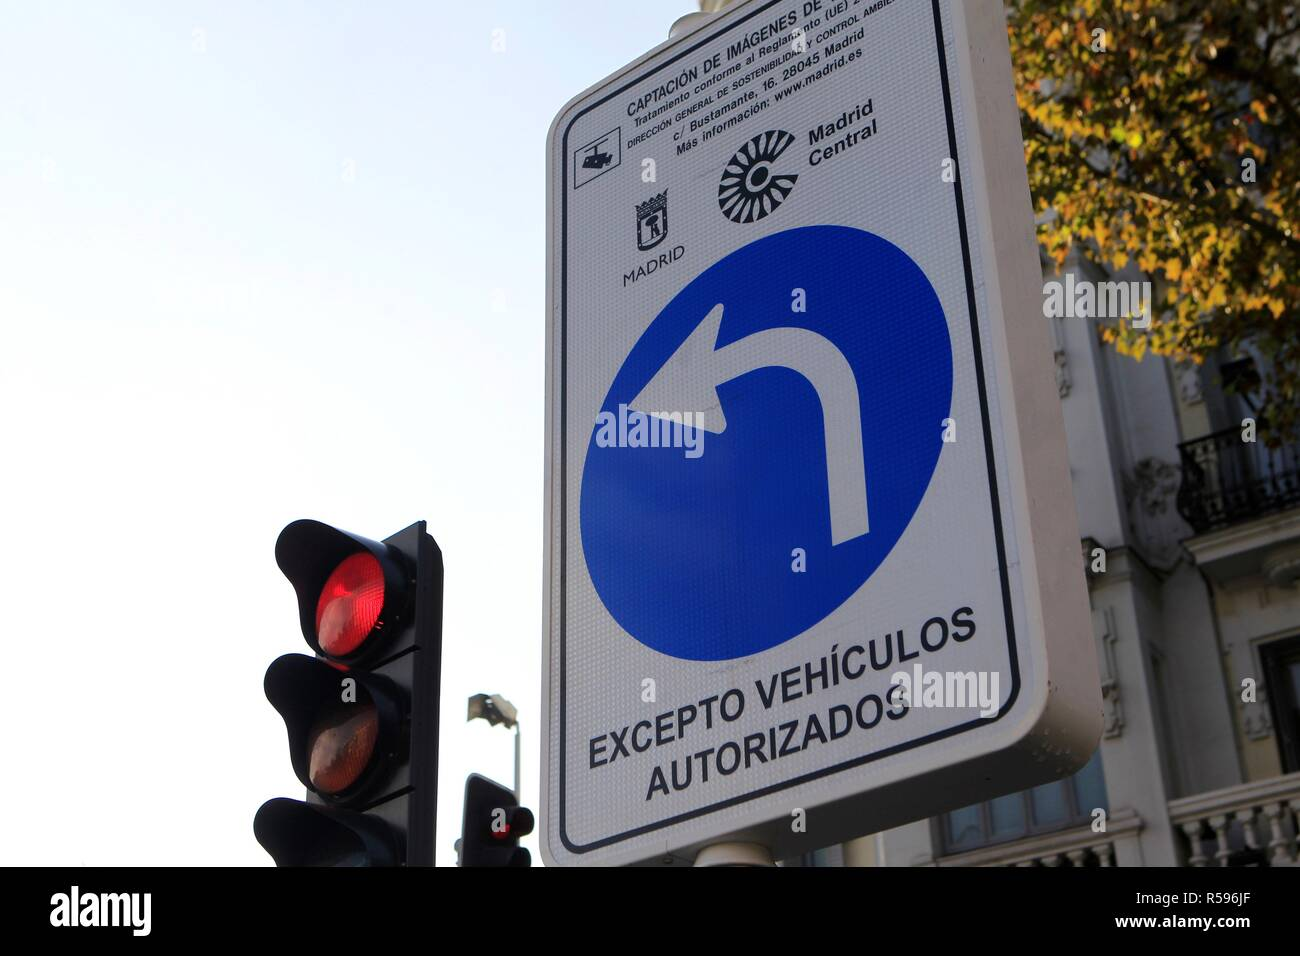 A traffic sign informs of new traffic regulation for Madrid city centre in Madrid, Spain, 30 November 2018. Madrid has kicked off from midnight a new traffic order that restricts the circulation for Madrid's downtown non resident drivers inside an area of 472 hectares in the centre of the capital. The initiative aims at reducing C02 emissions and means that non resident drivers who count with valid eco permission cars will not be able to run through the area unless they head for a public parking. The new rule, that will not come into force with punitive effect until March 2019, will not affect - Stock Image